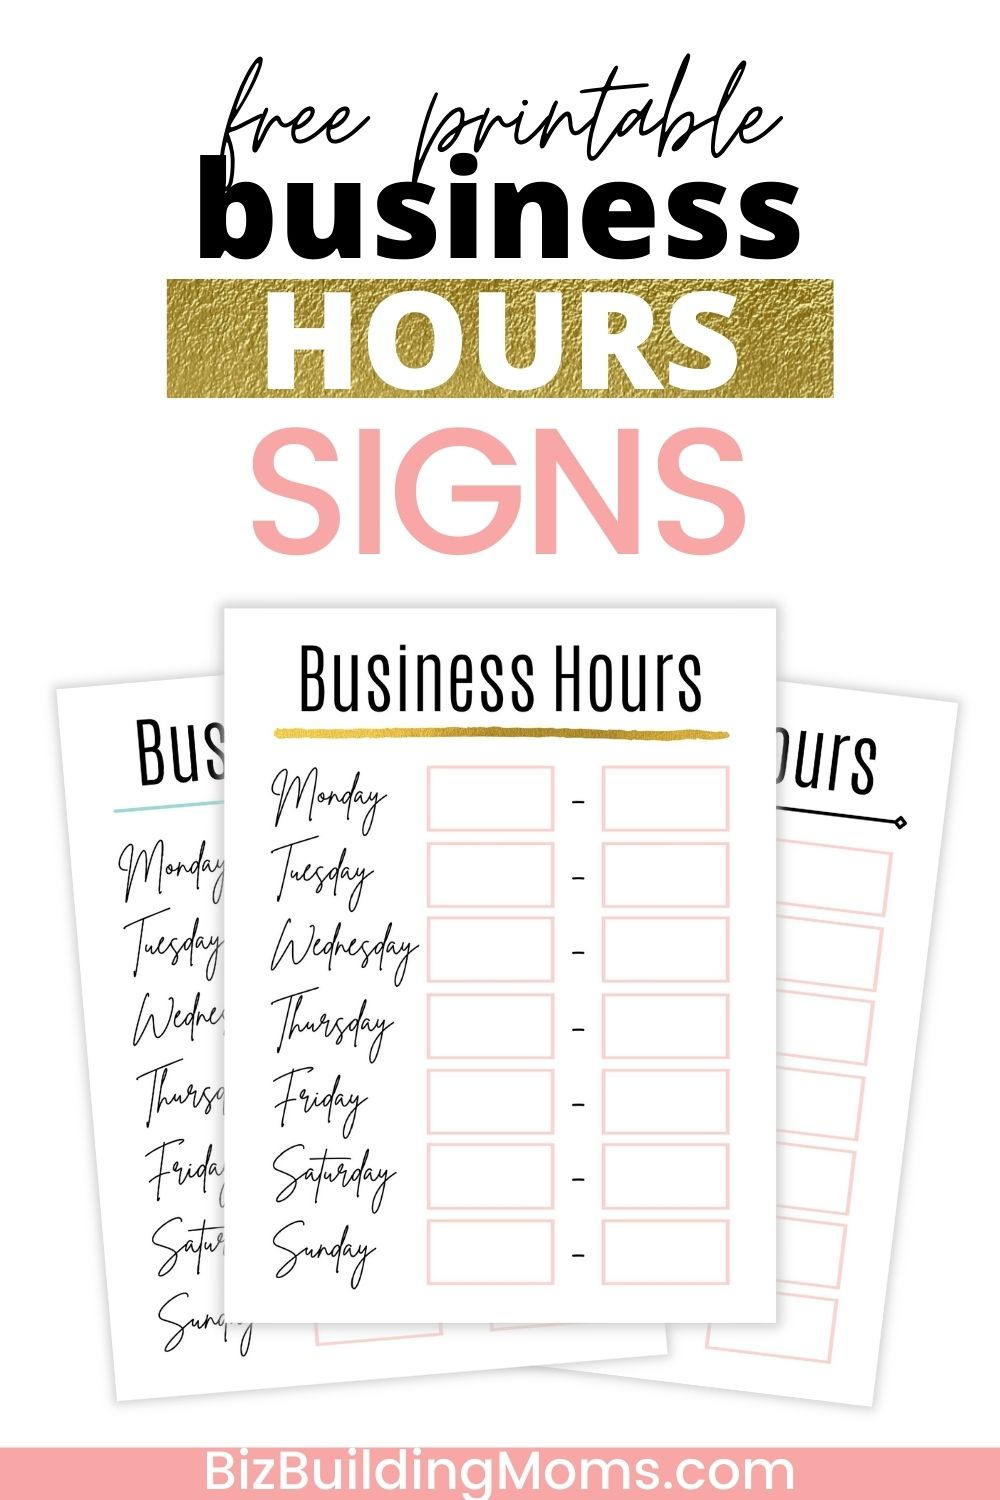 business hours signs with title - Pinterest image